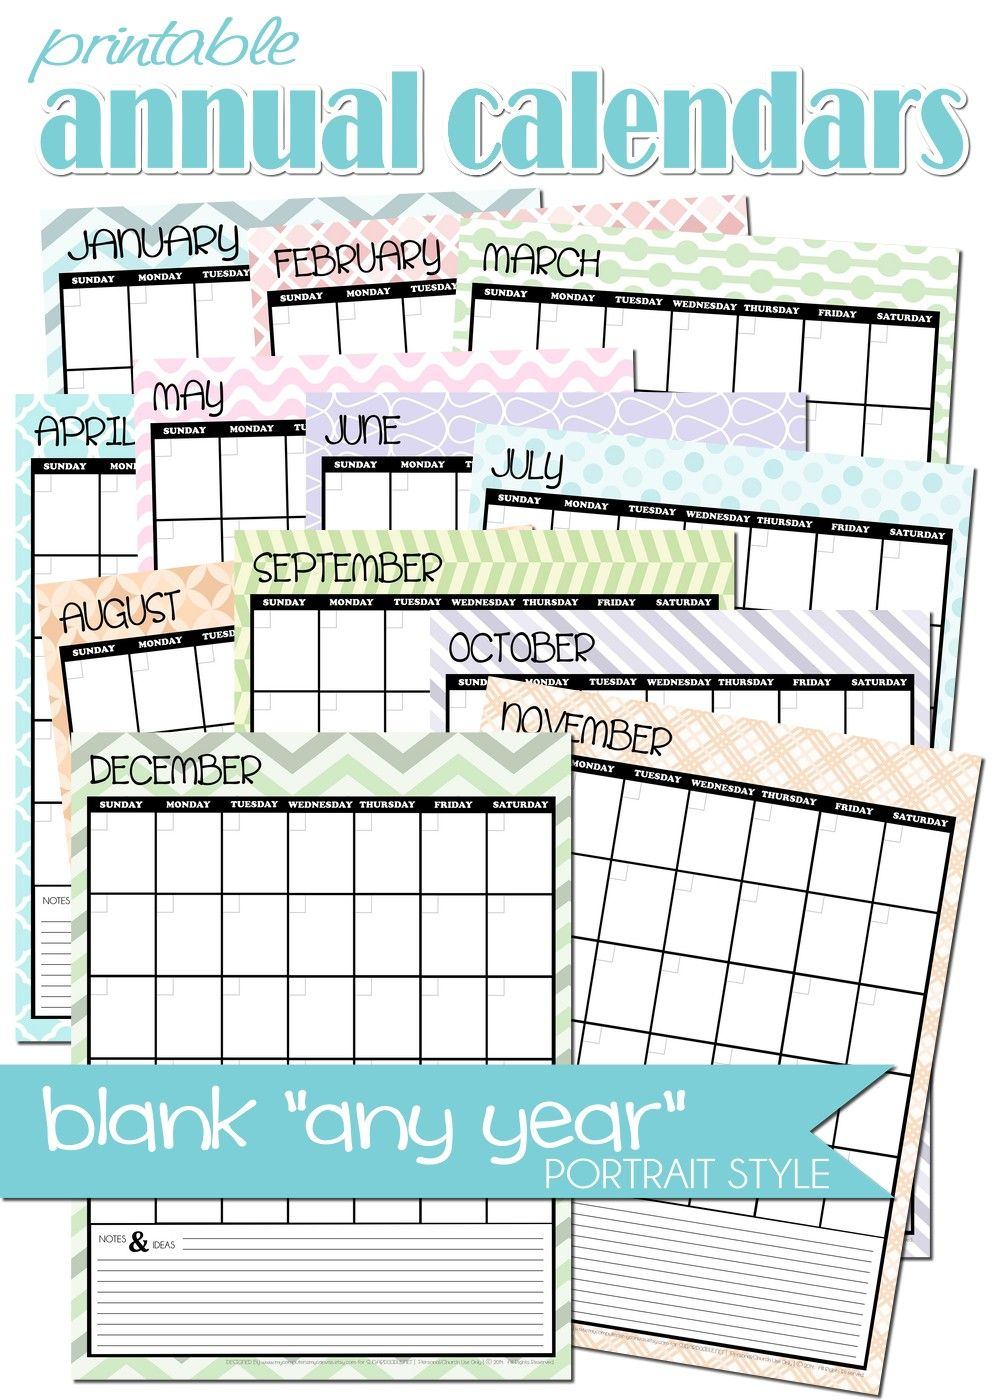 Best 25+ Printable blank calendar ideas on Pinterest ...